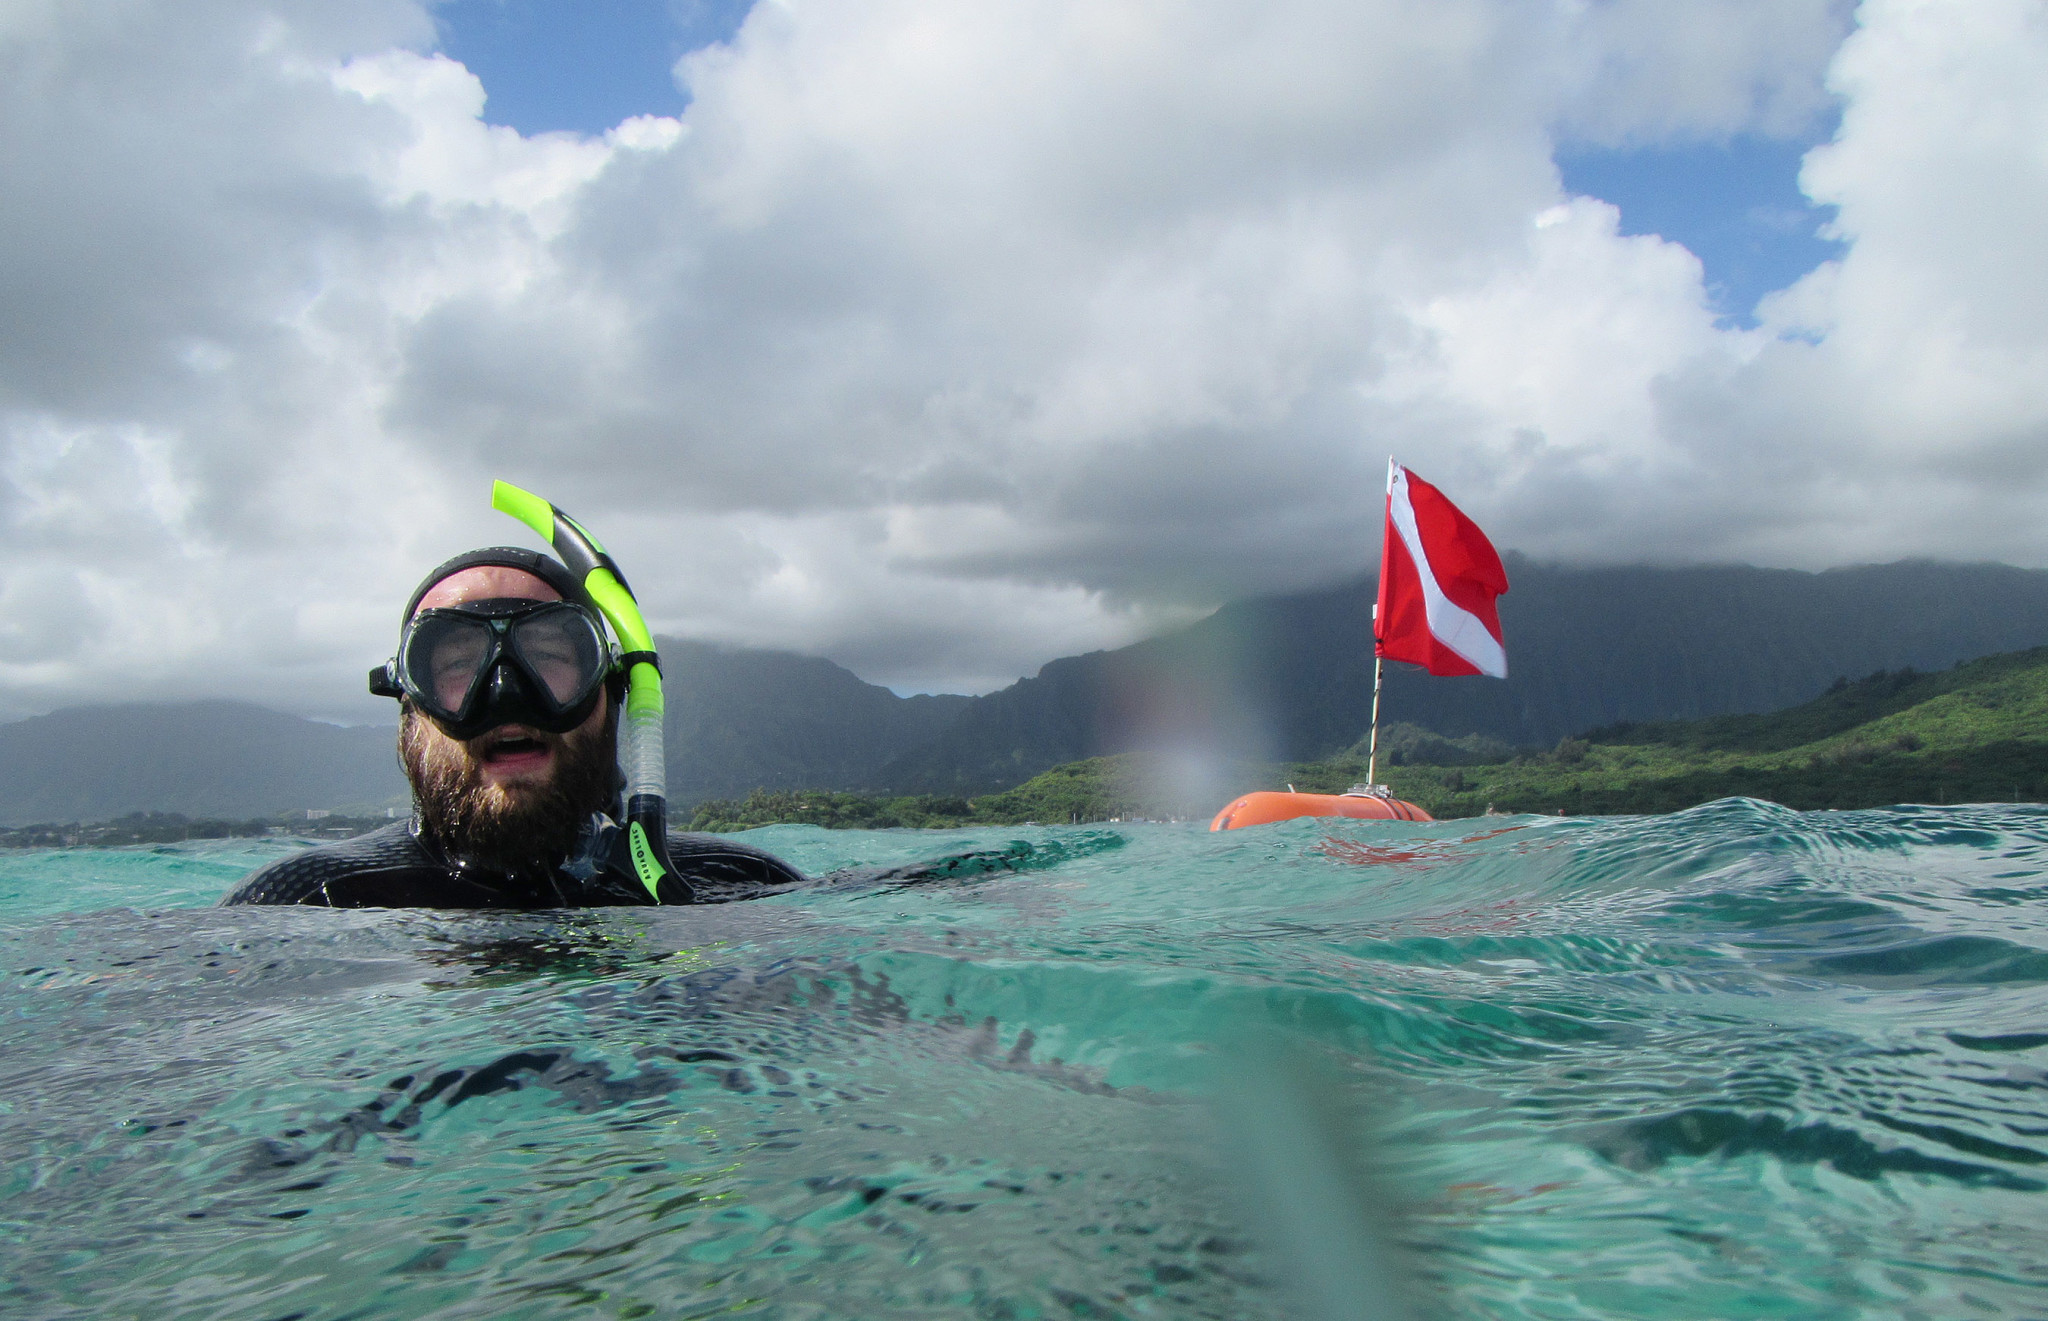 <p>DLNR fishery technician Daniel Lager provided an underwater tour of Kaneohe Bay&#8217;s coral, which has rebounded despite all the environmental stresses it has suffered from pollution, invasive species and climate change. In fact, scientists now believe the stress has made Kaneohe Bay&#8217;s coral more resilient to future bleaching.</p>